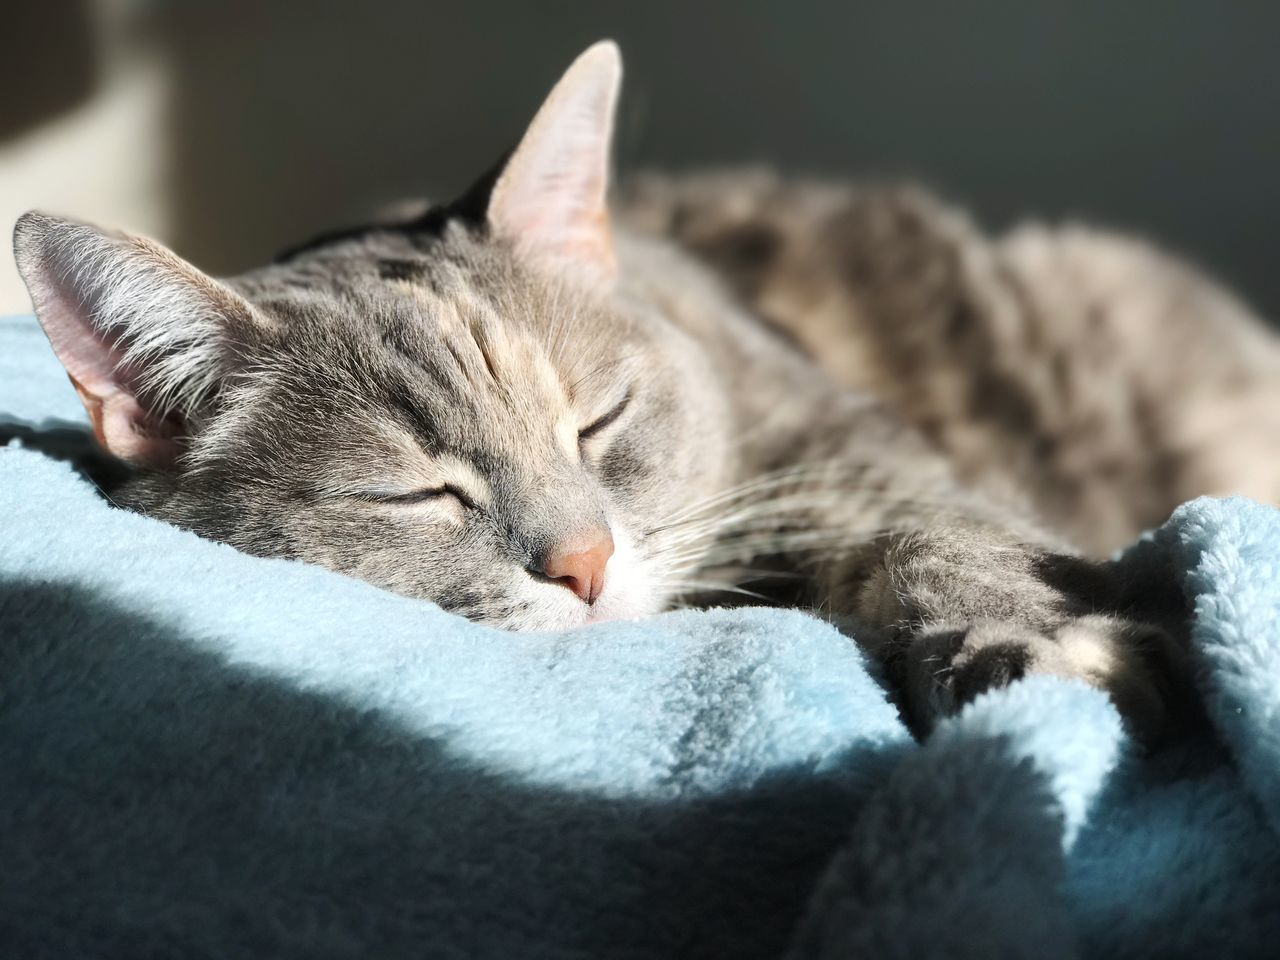 Domestic Cat Cat Sleeping Cat Cat In Sunbeam Animal Themes Pets Eyes Closed  Domestic Animals Relaxation Sleeping Whisker Close-up Feline Indoors